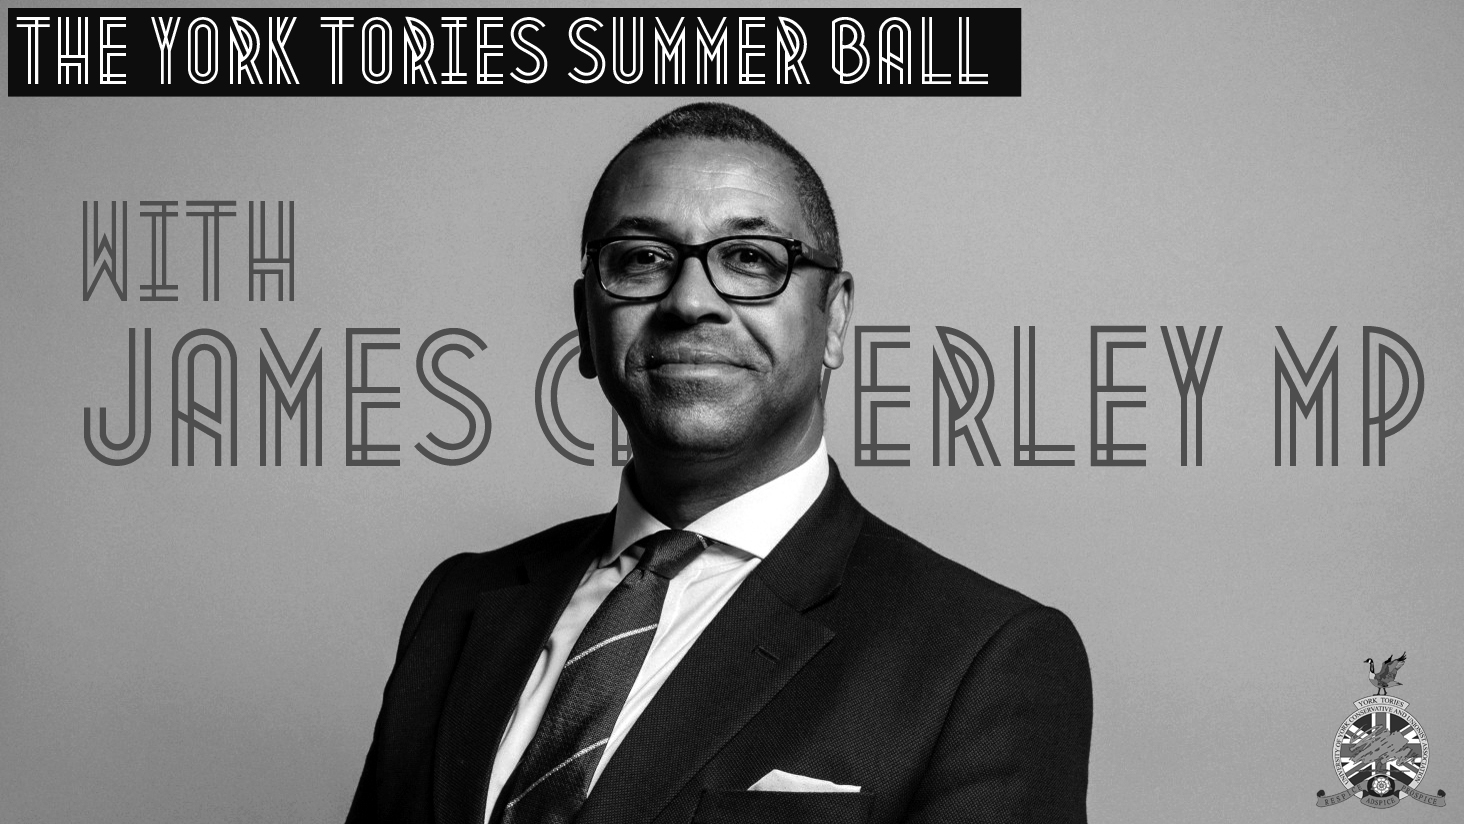 York Tories Summer Ball 2019 with James Cleverly MP